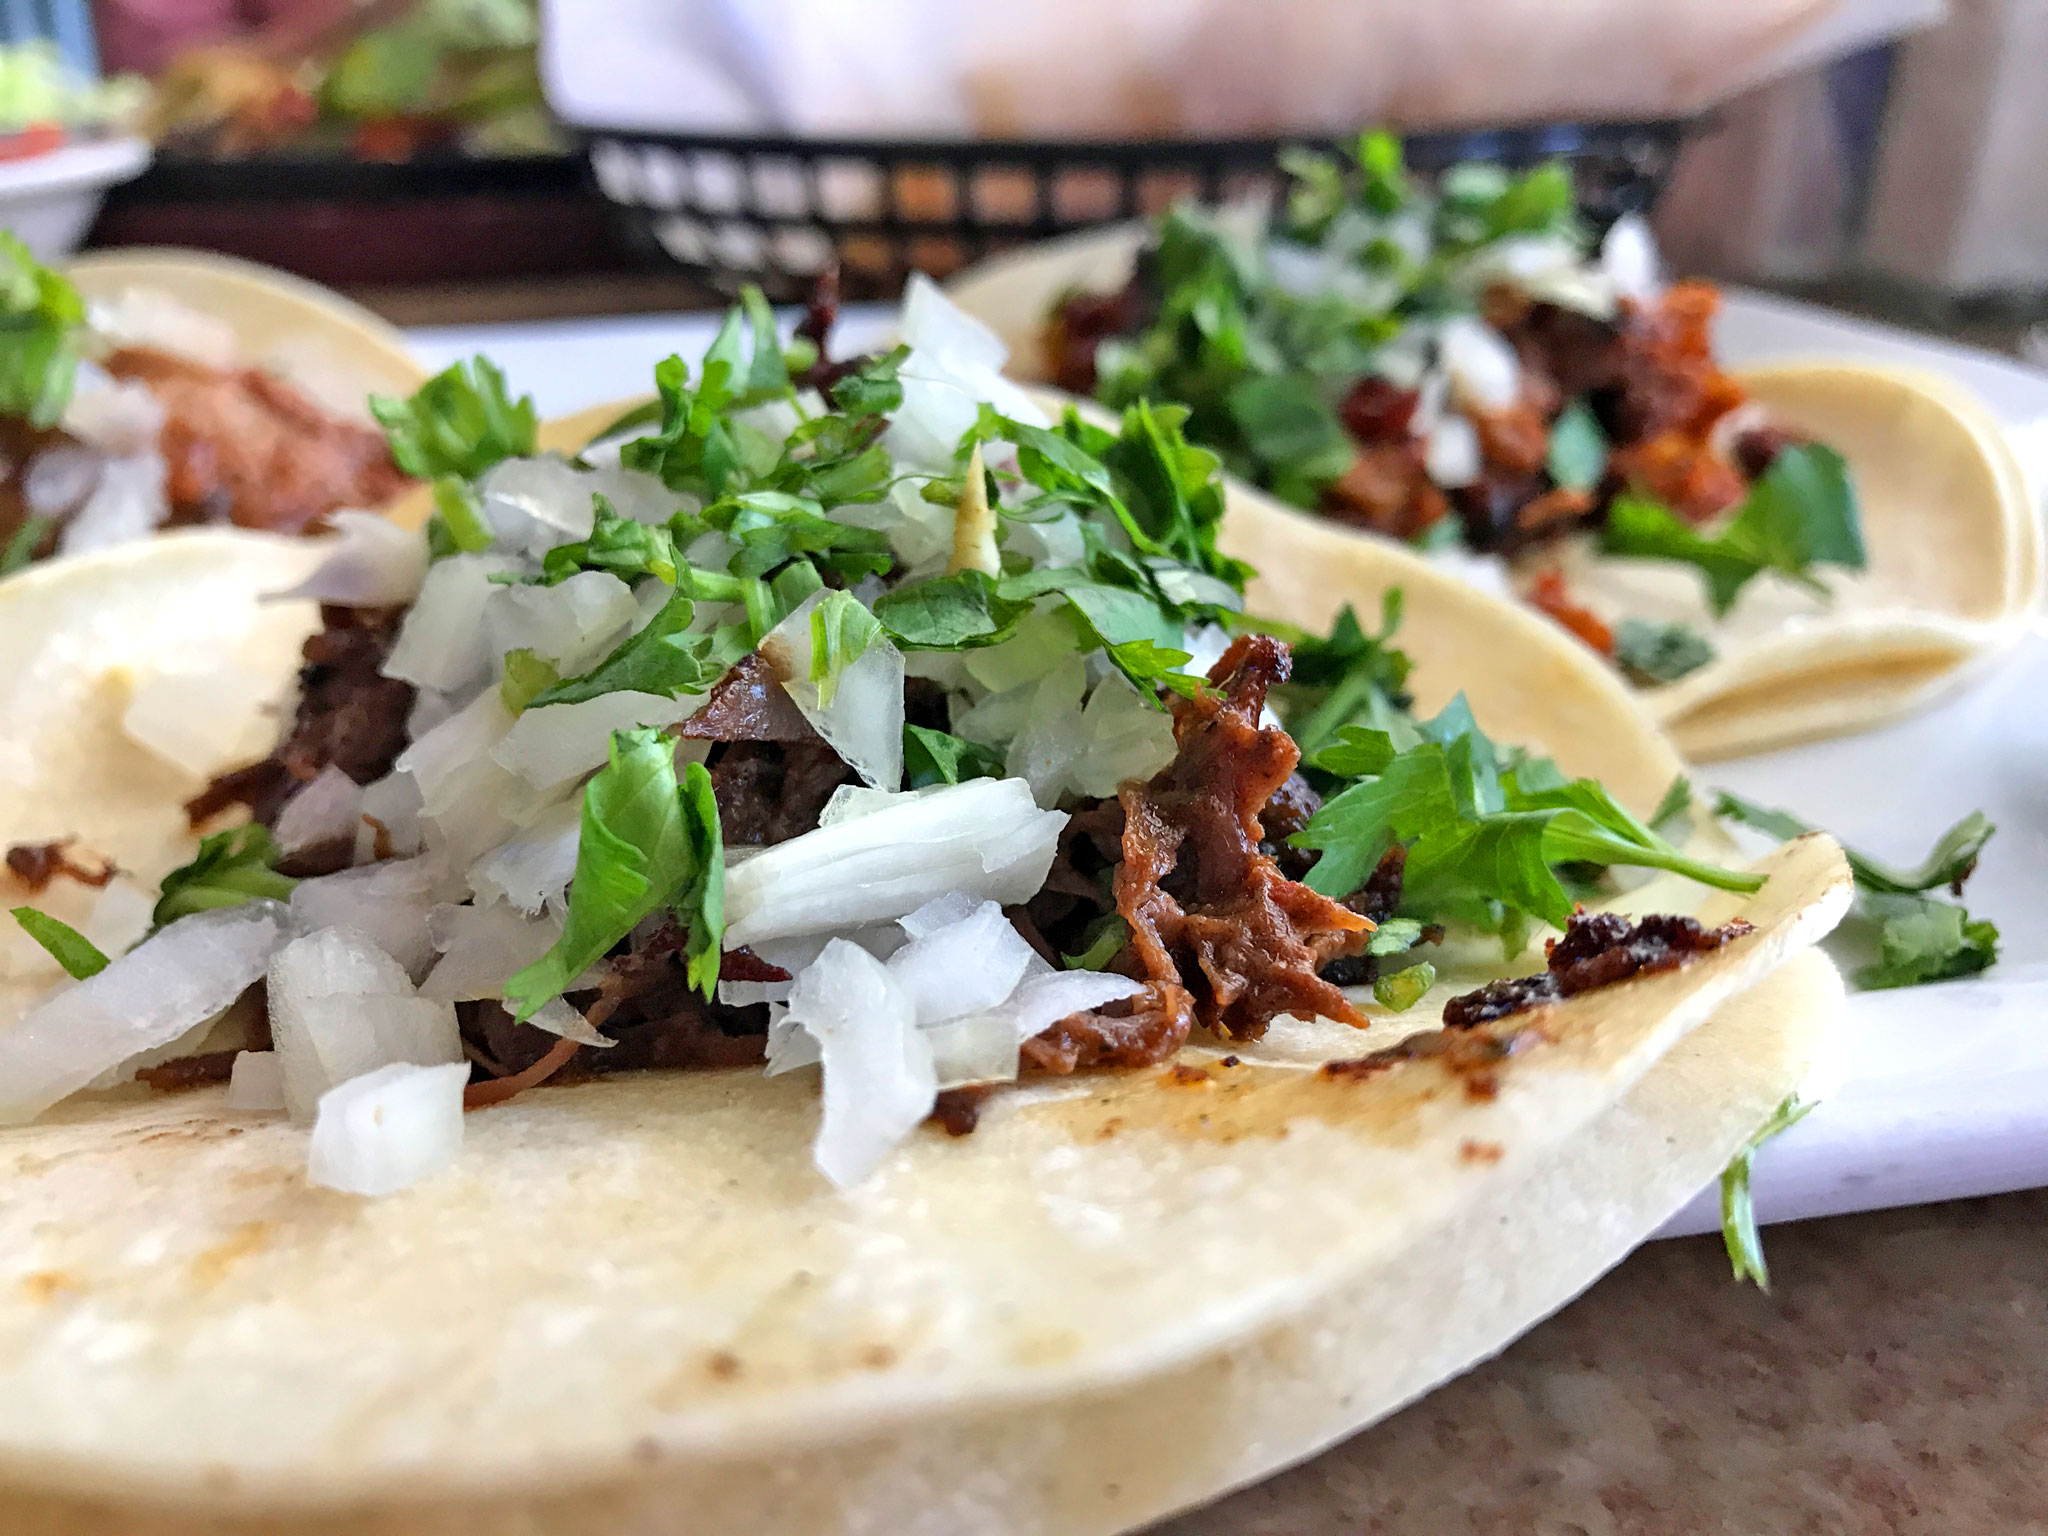 Close-up of Steak Taco with Mexican Taco Trio